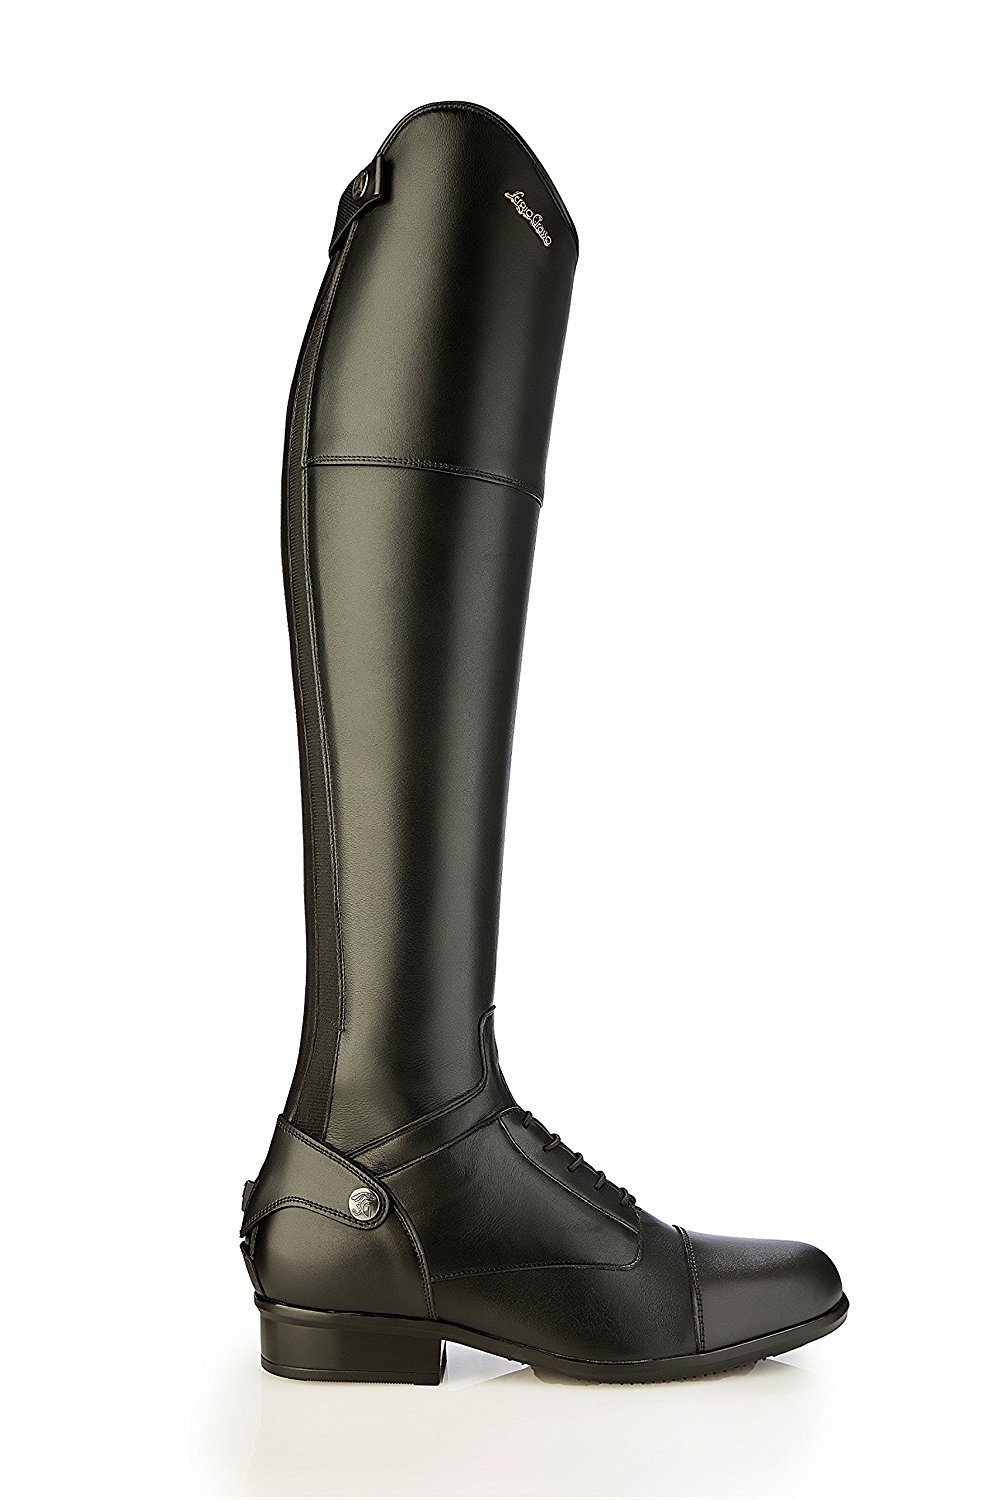 Sergio Grasso Evolution Field Boot Absolute Black Size: 40H Height-Calf: 44-34